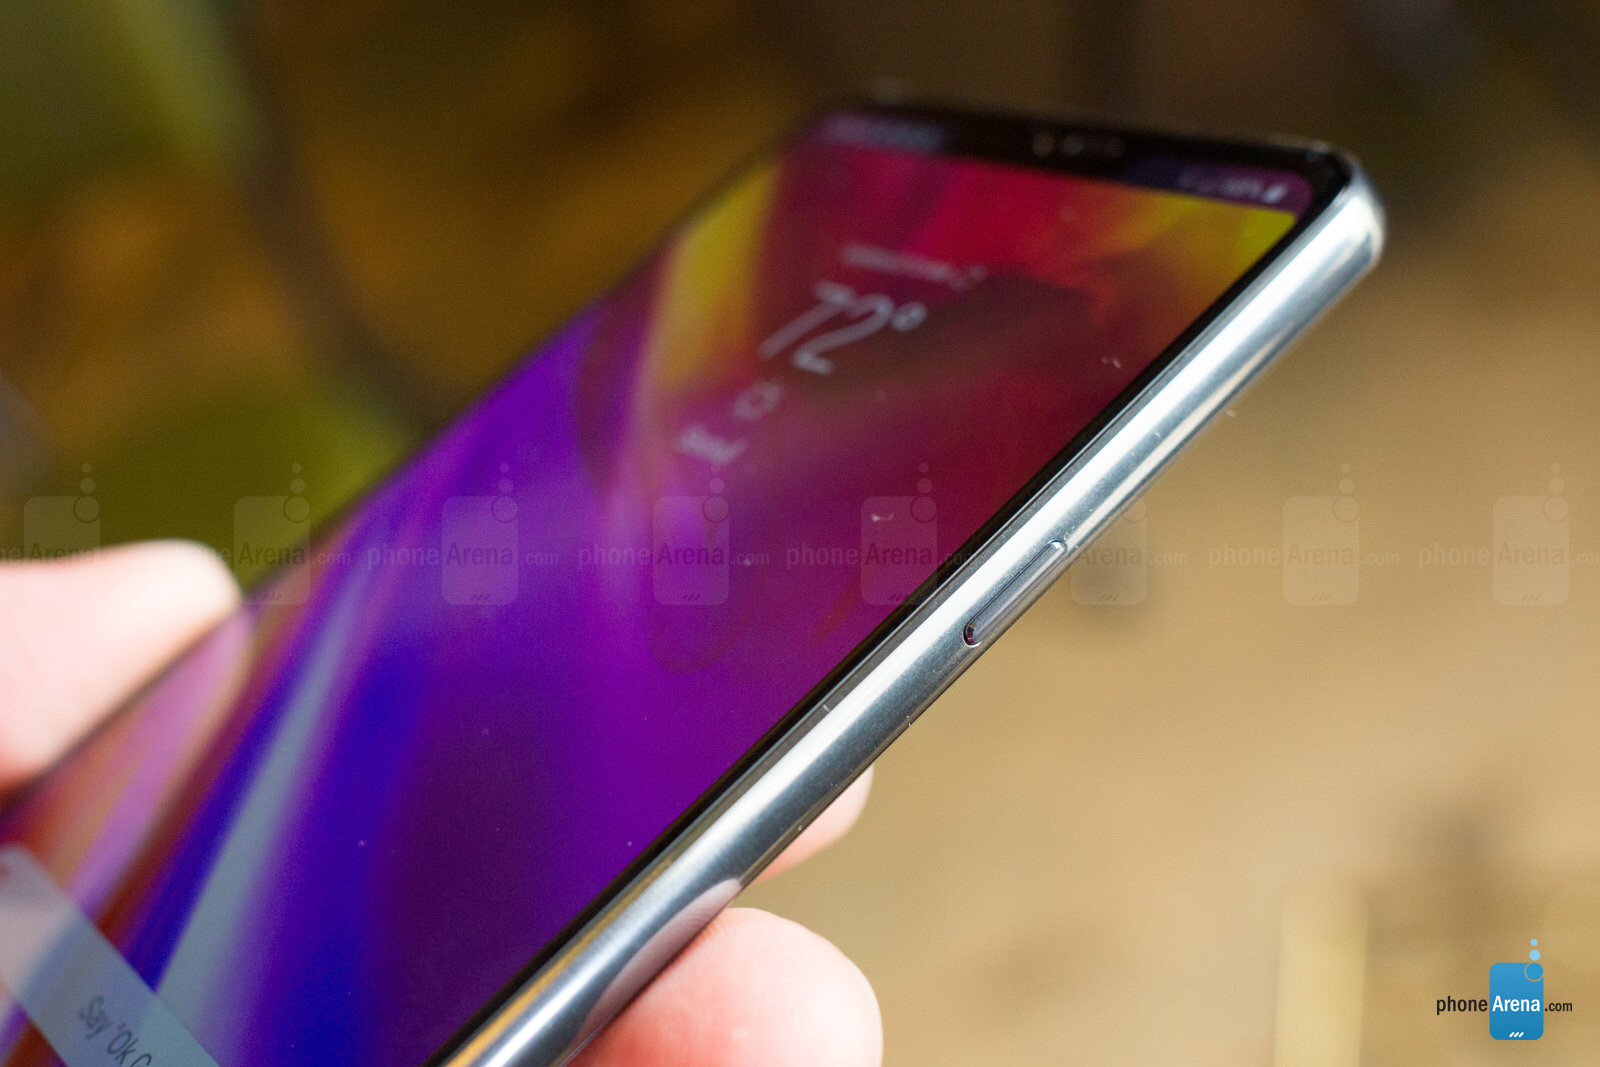 LG G7 ThinQ preview and first impressions - PhoneArena